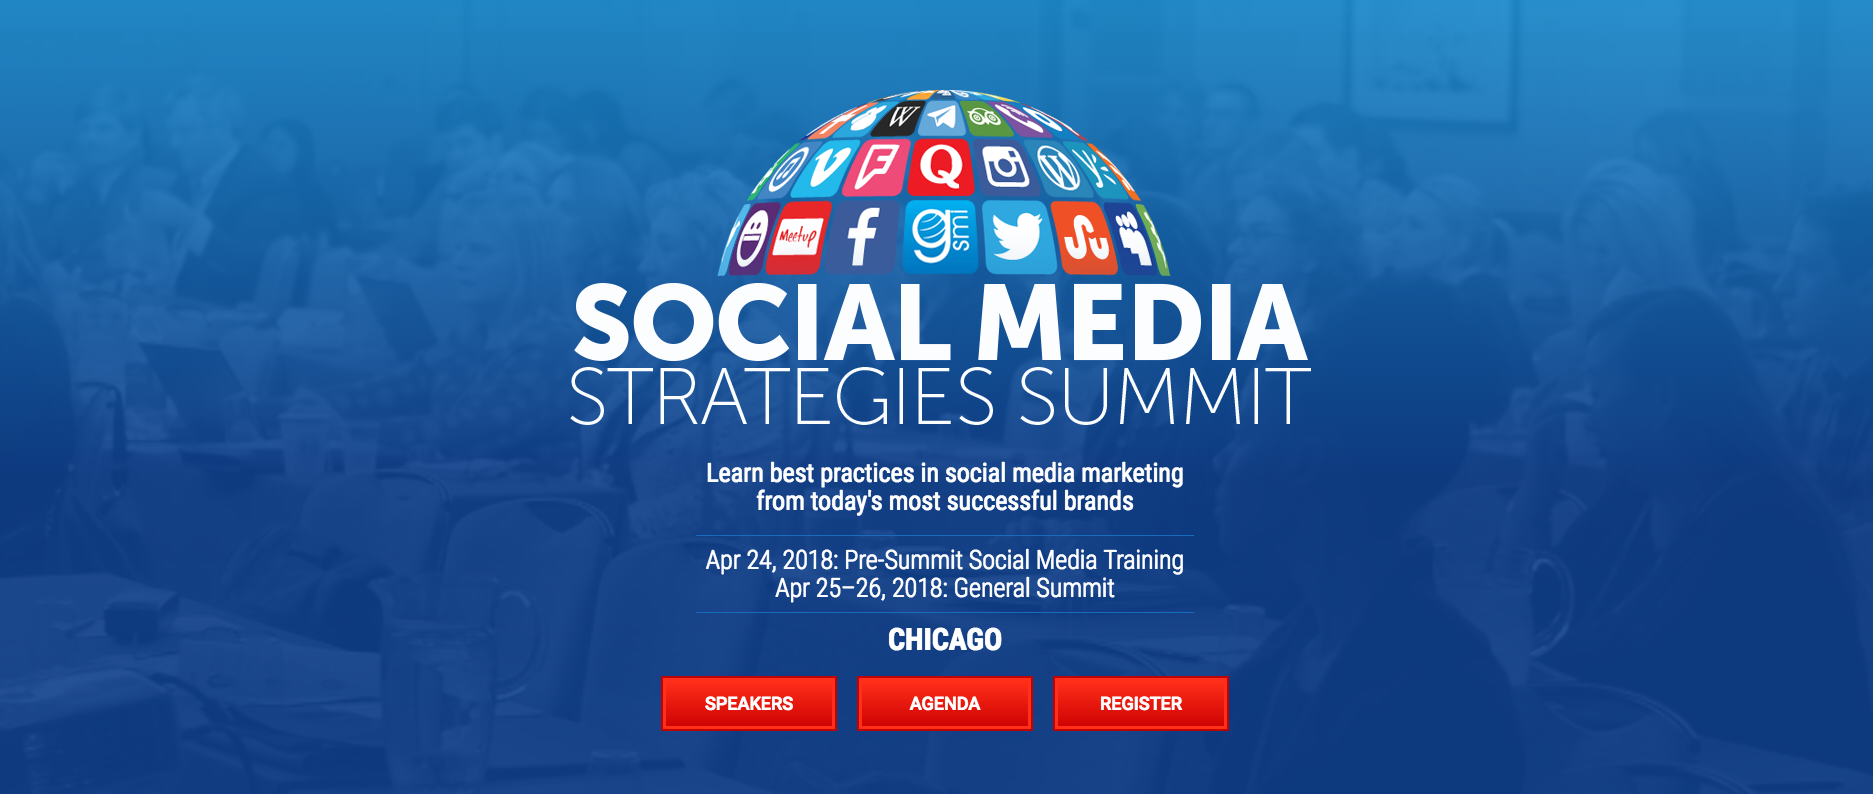 Social Media Strategies Summit 2018 Marketing Conferences